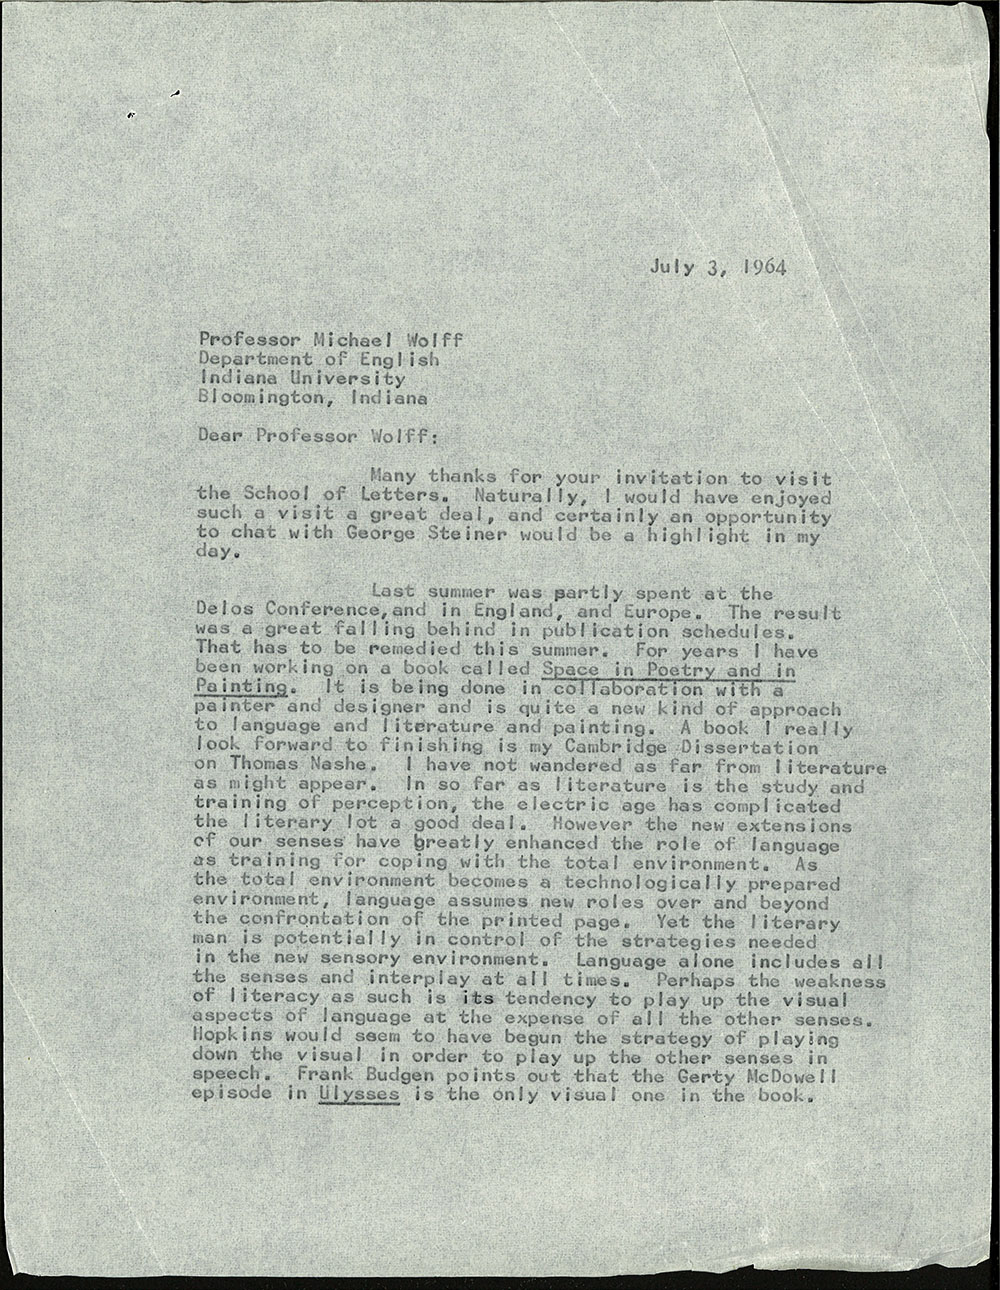 Letter dated July 3, 1964 to Michael Wolff (page 1)